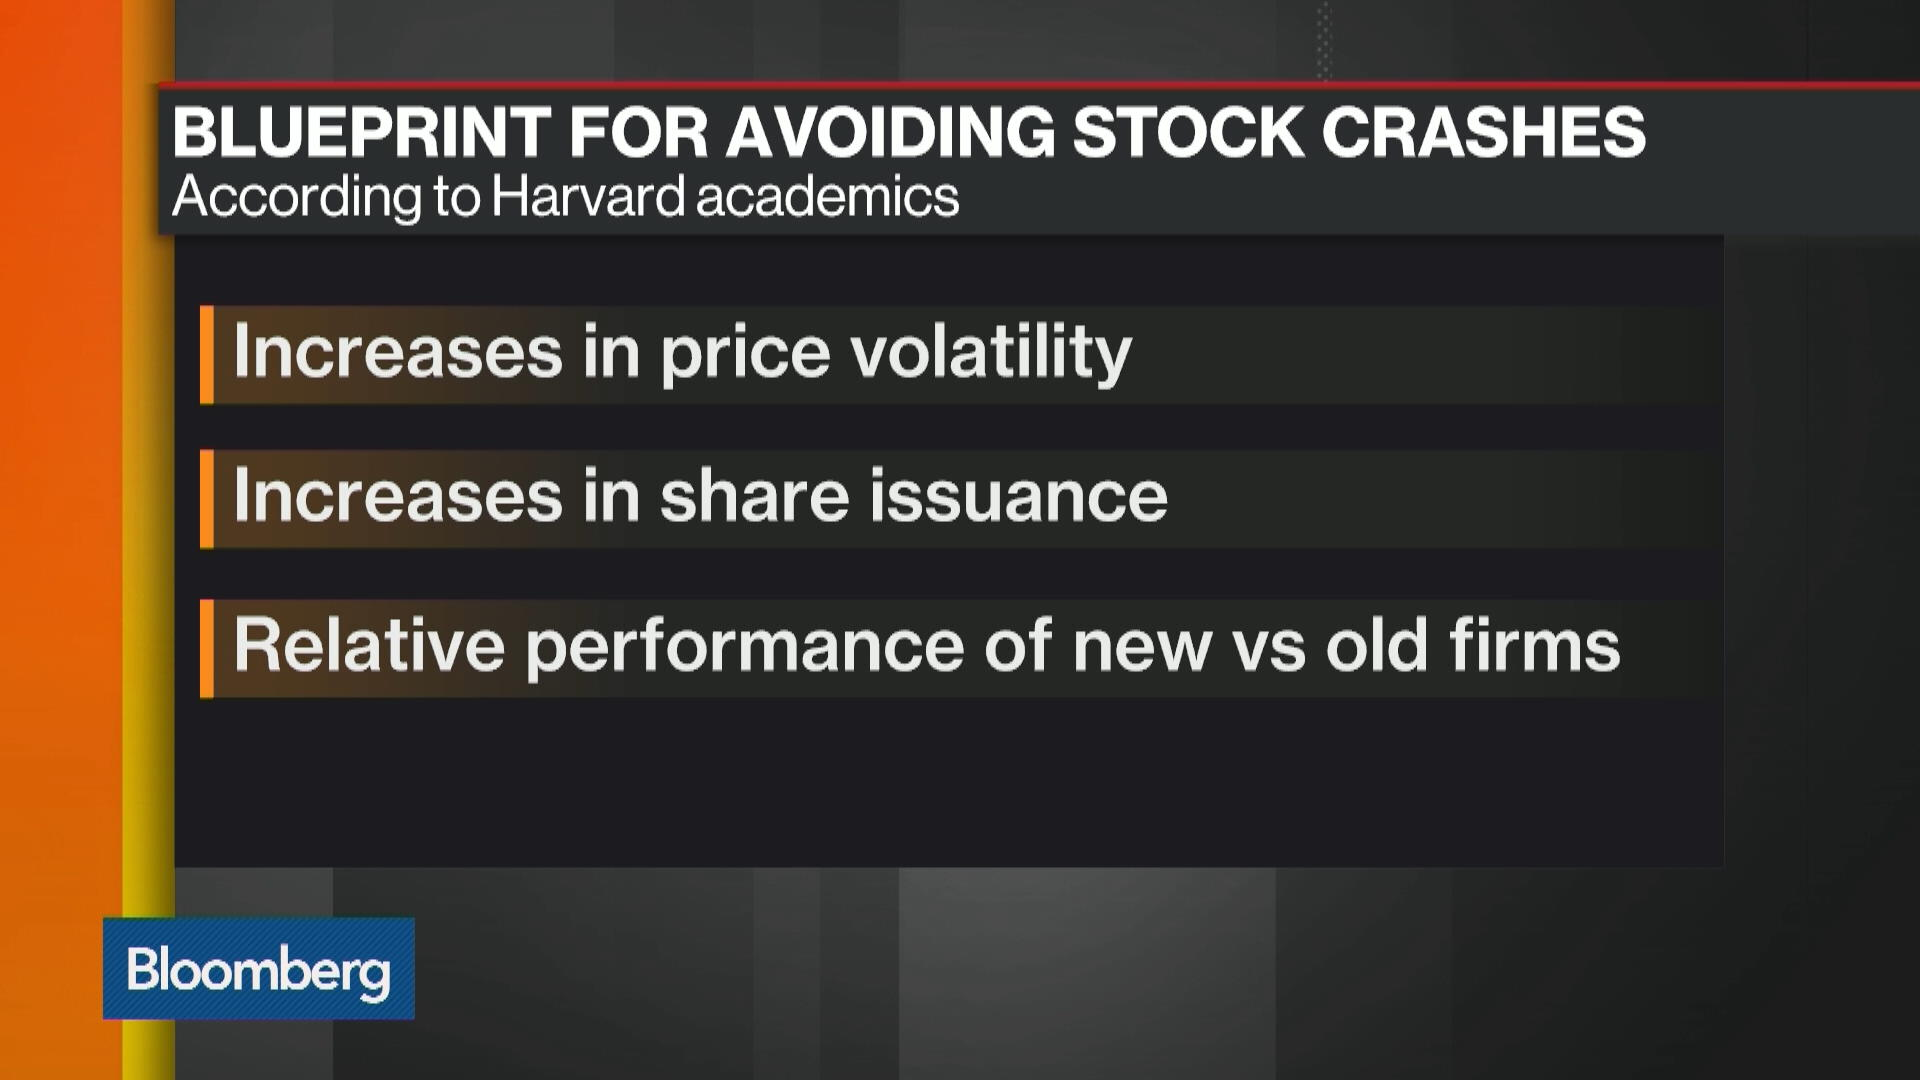 Harvard Reveals Blueprint for Avoiding Stock Crashes